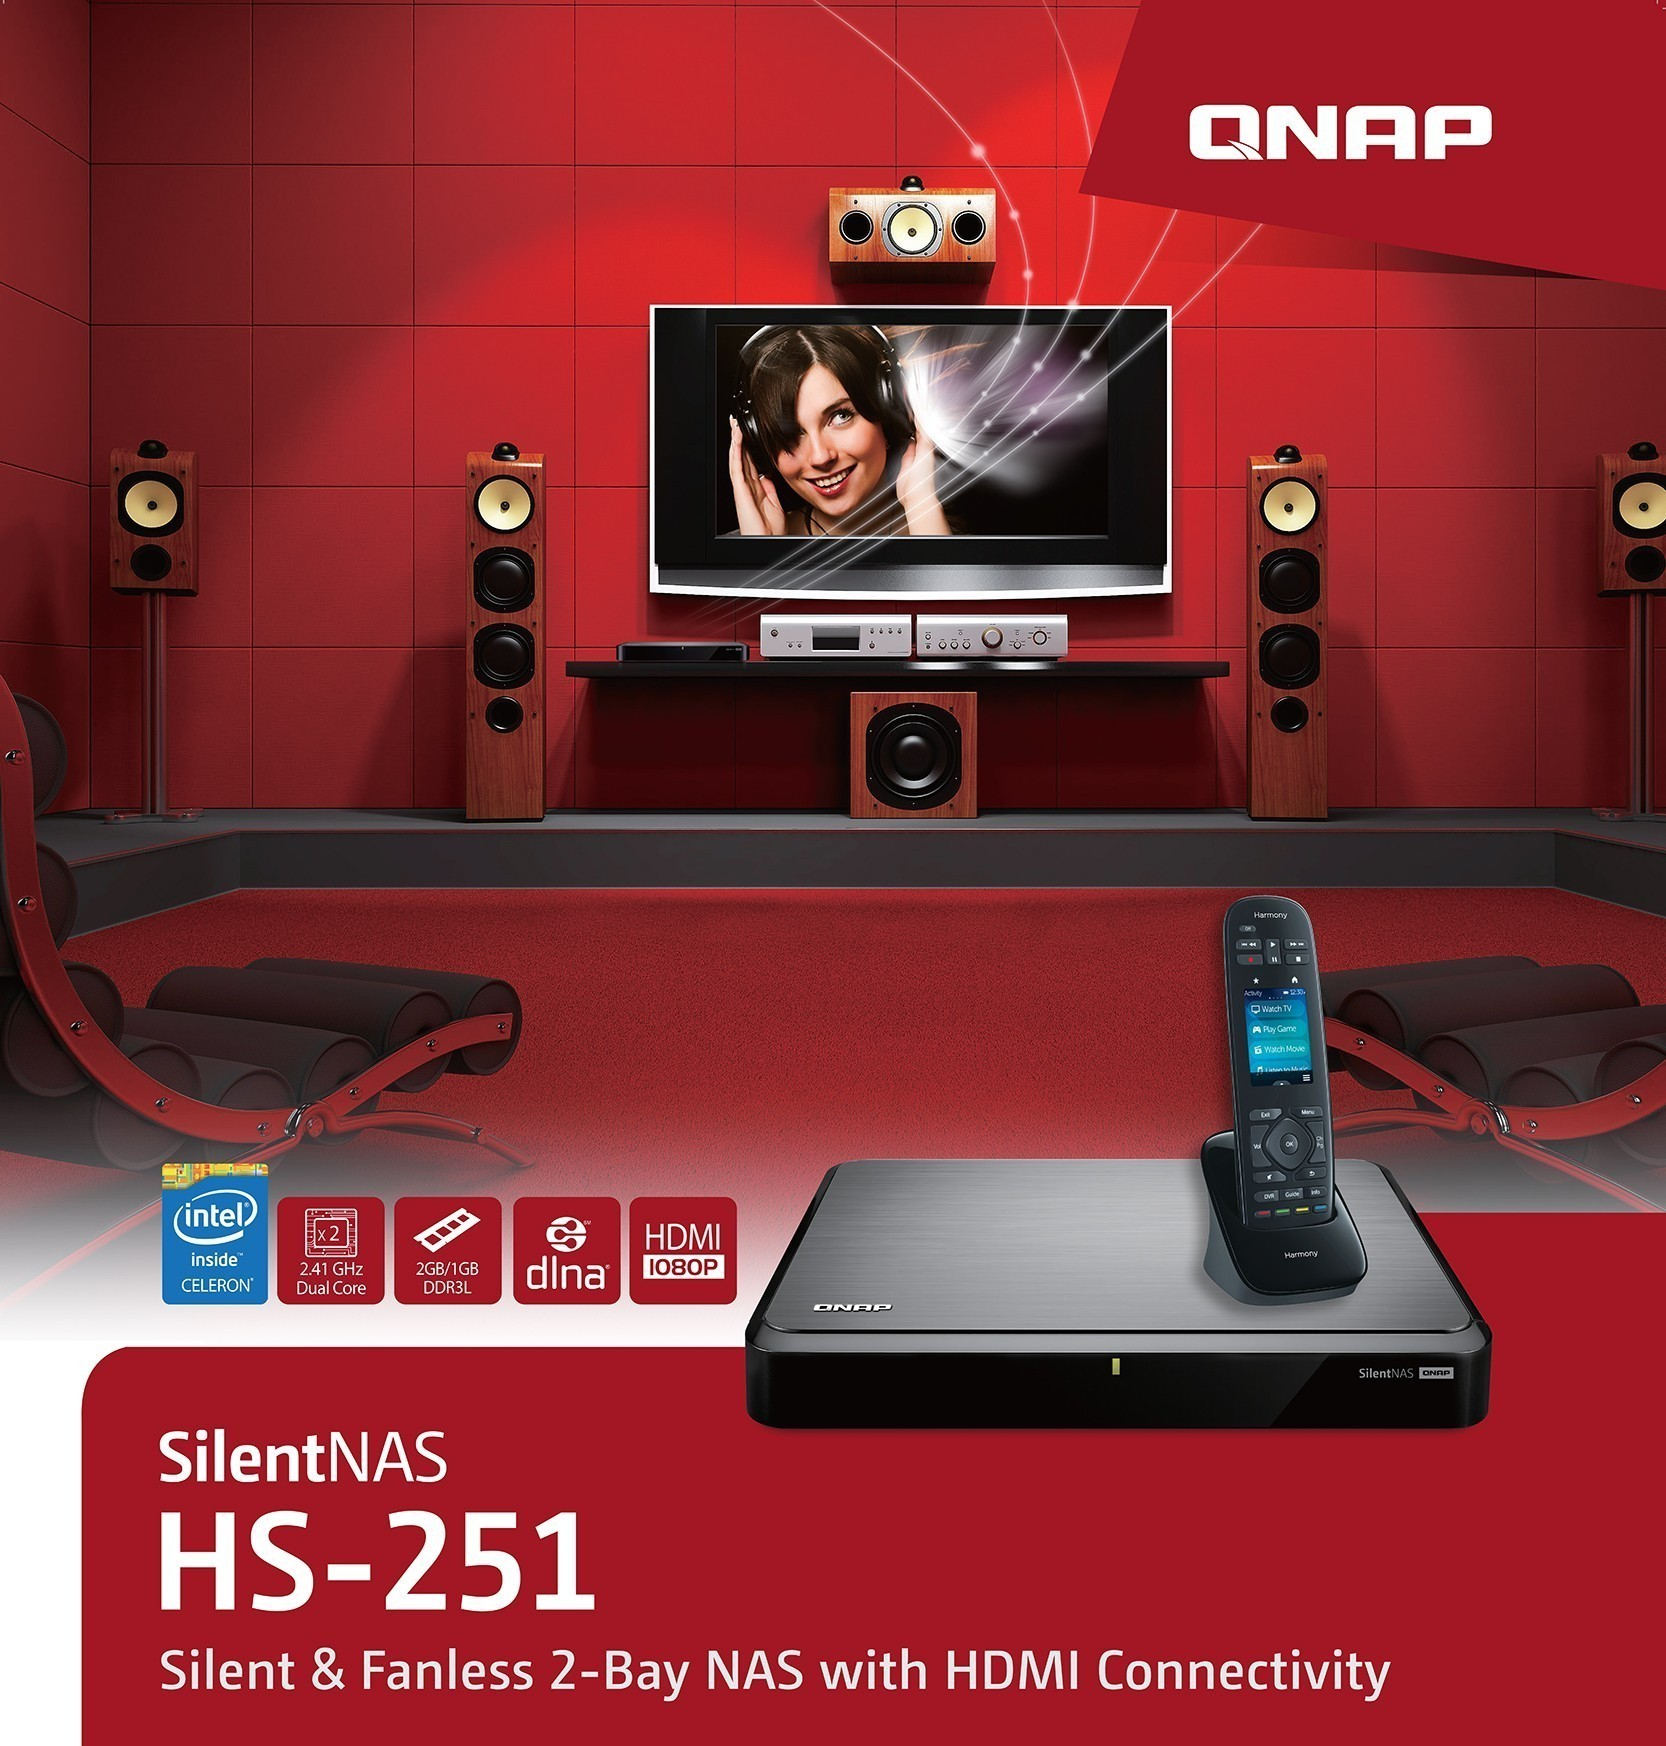 qnap_hdmi_xbmc_kodi_hd_station_and_logitech_harmony.